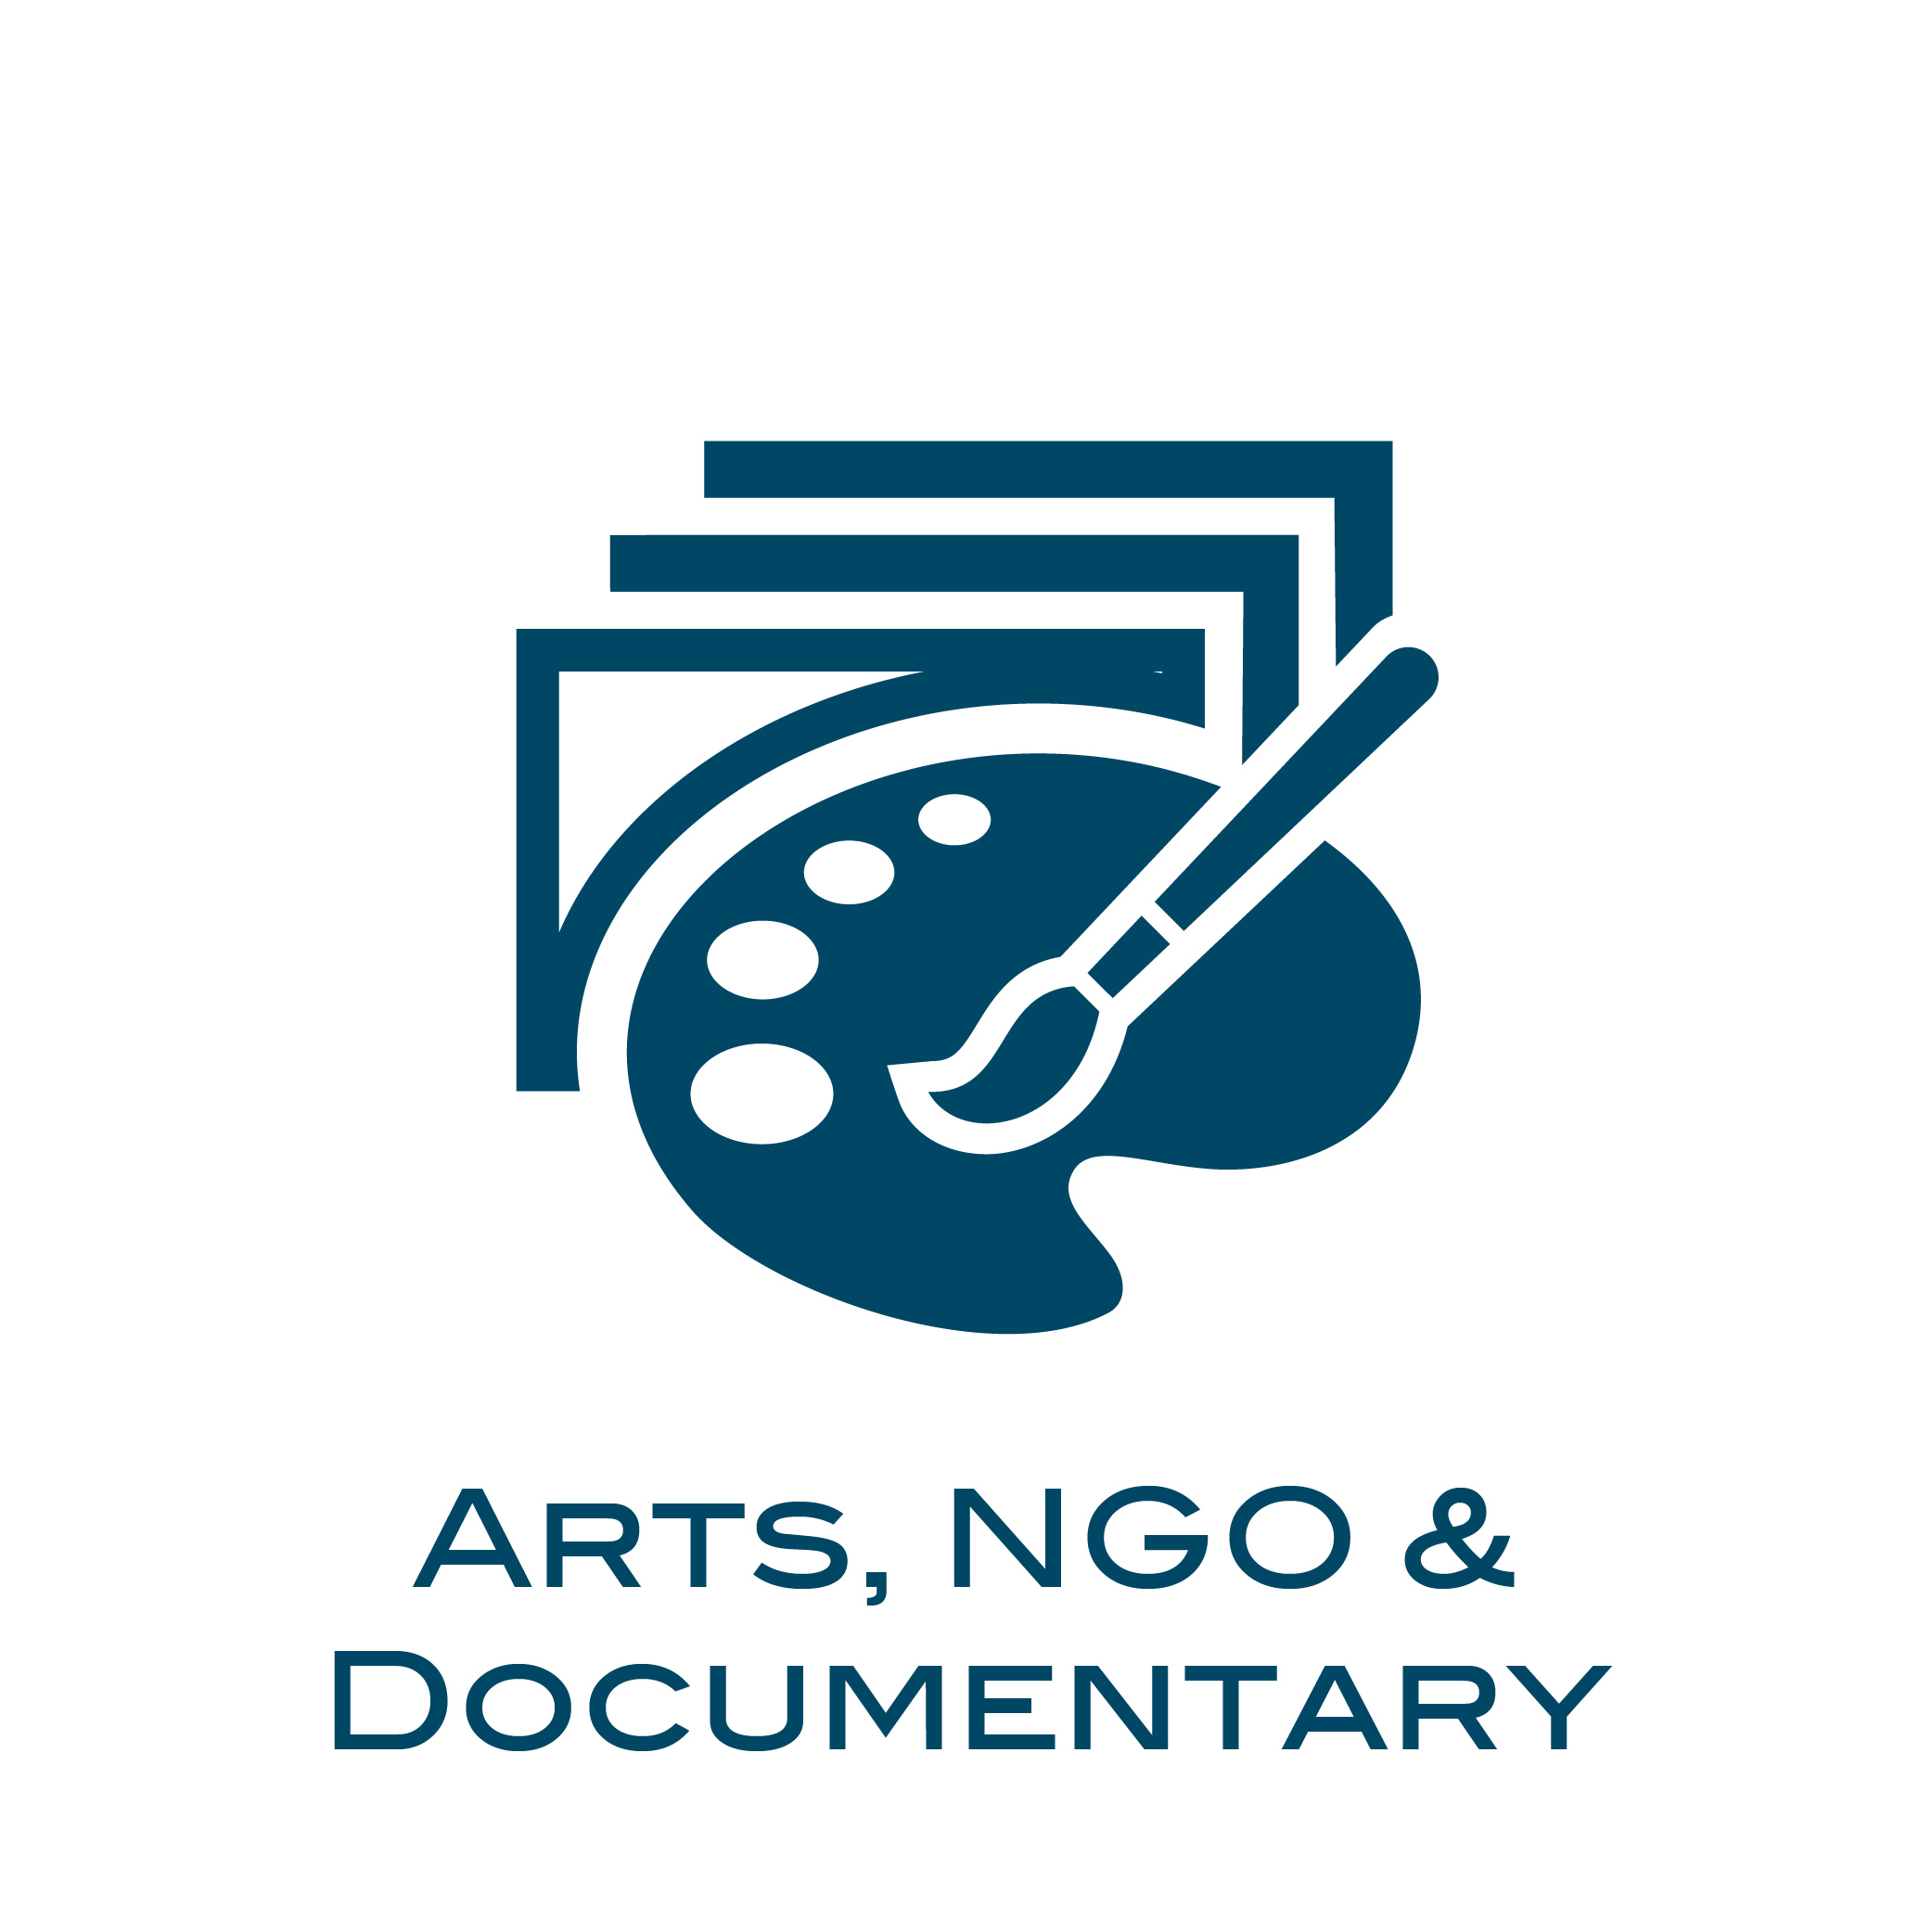 Our crews have travelled the world producing high-end documentary and commercial content for arts organisations, NGOs and television channels, covering all manner of subject matter.